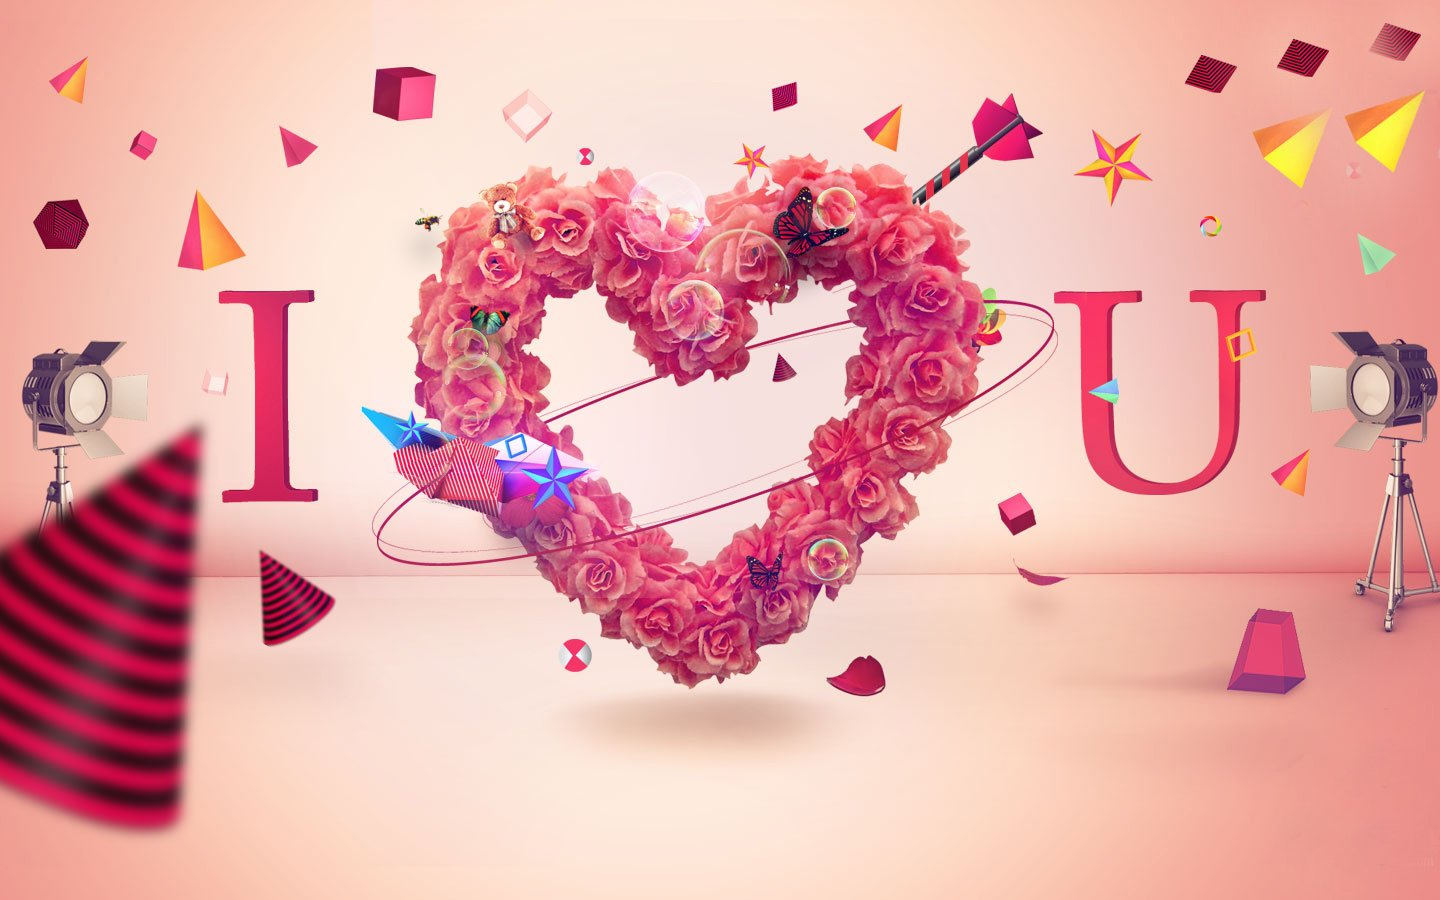 Free Download You Wallpapers Love 3d Wallpapers Love 3d